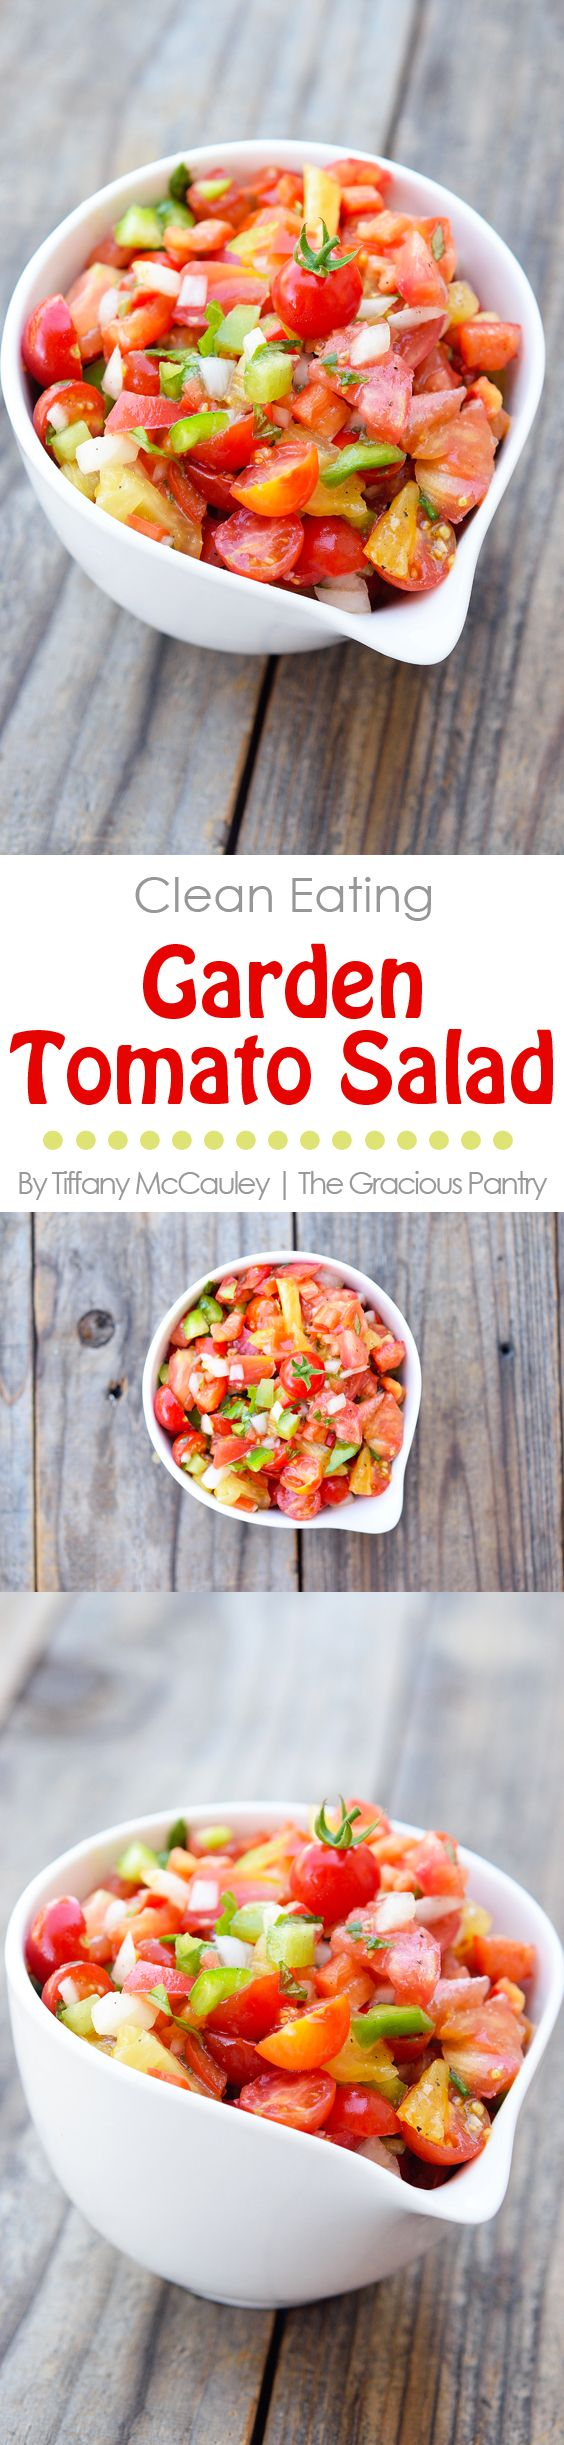 157 best clean eating vegetarian recipes images on pinterest clean eating garden tomato salad tomato salad recipestomato recipevegetable forumfinder Gallery